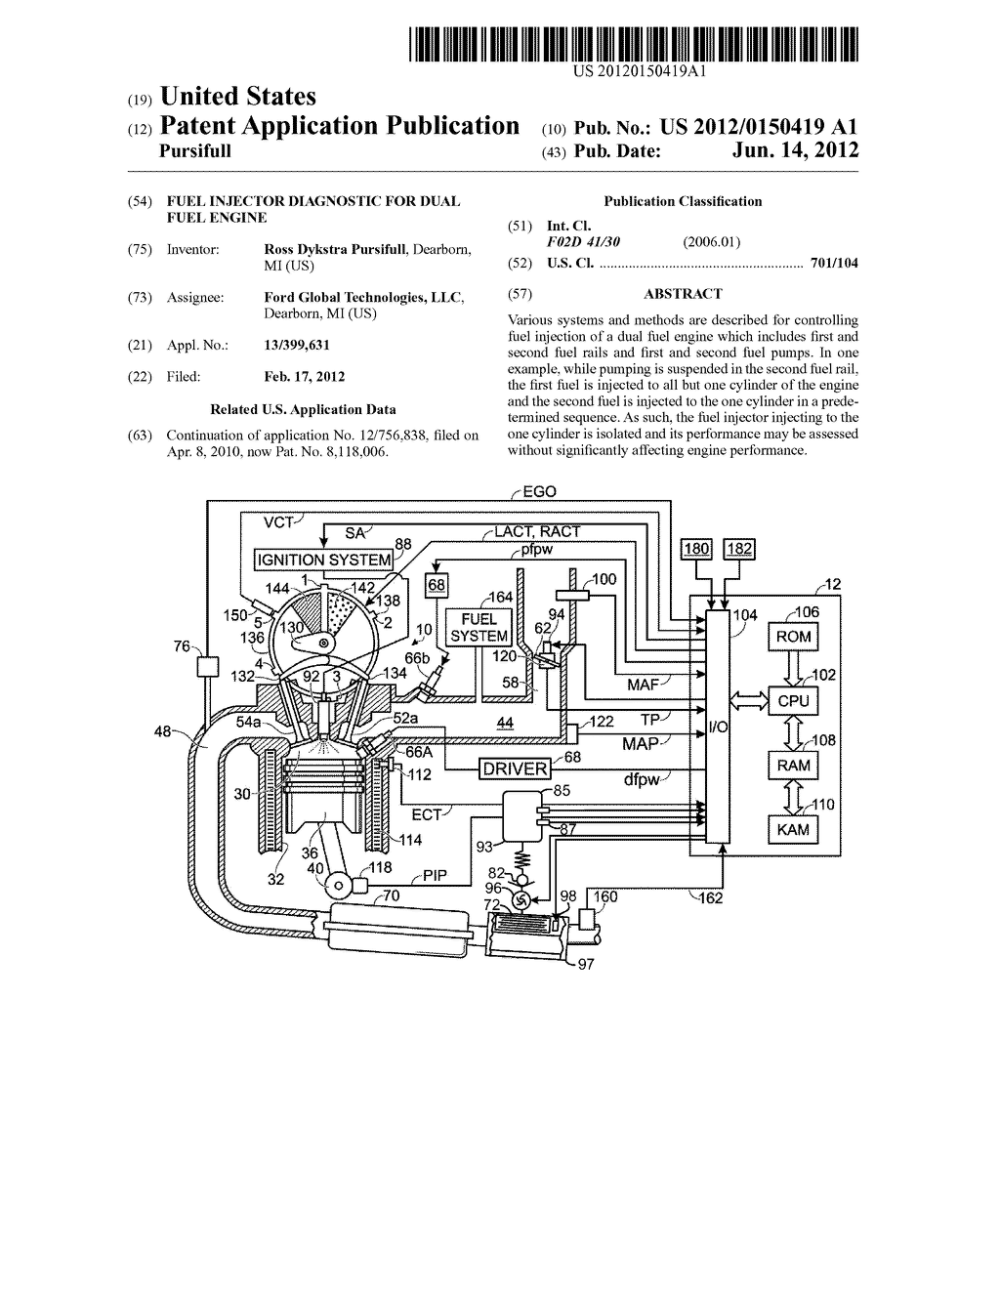 medium resolution of fuel injector diagnostic for dual fuel engine diagram schematic and image 01